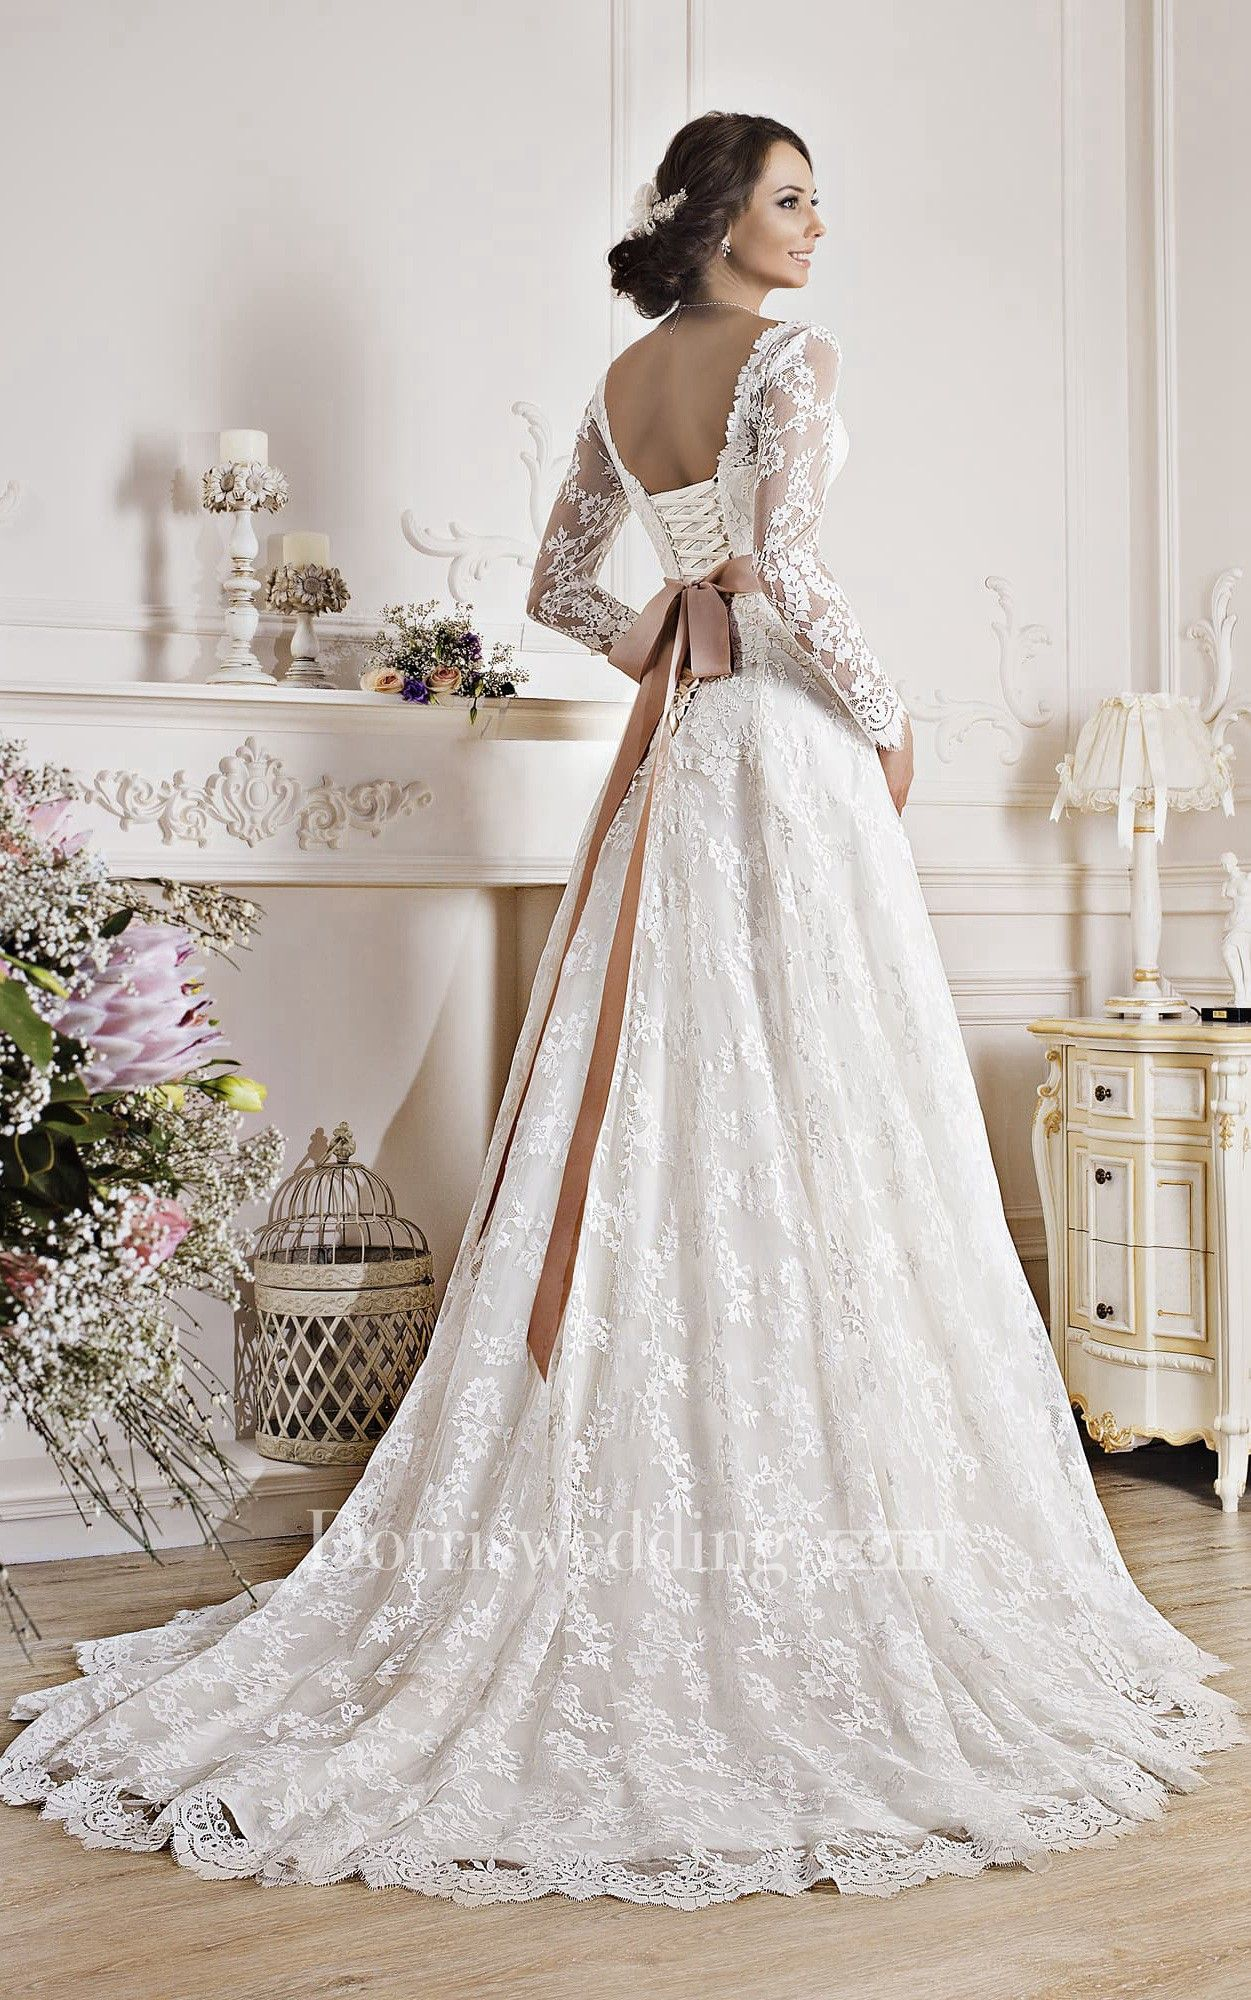 A Line Floor Length V Neck Illusion Sleeve Corset Back Lace Dress With Appliques And Bow Wedding Dresses Corset Bow Wedding Dress Lace Beach Wedding Dress